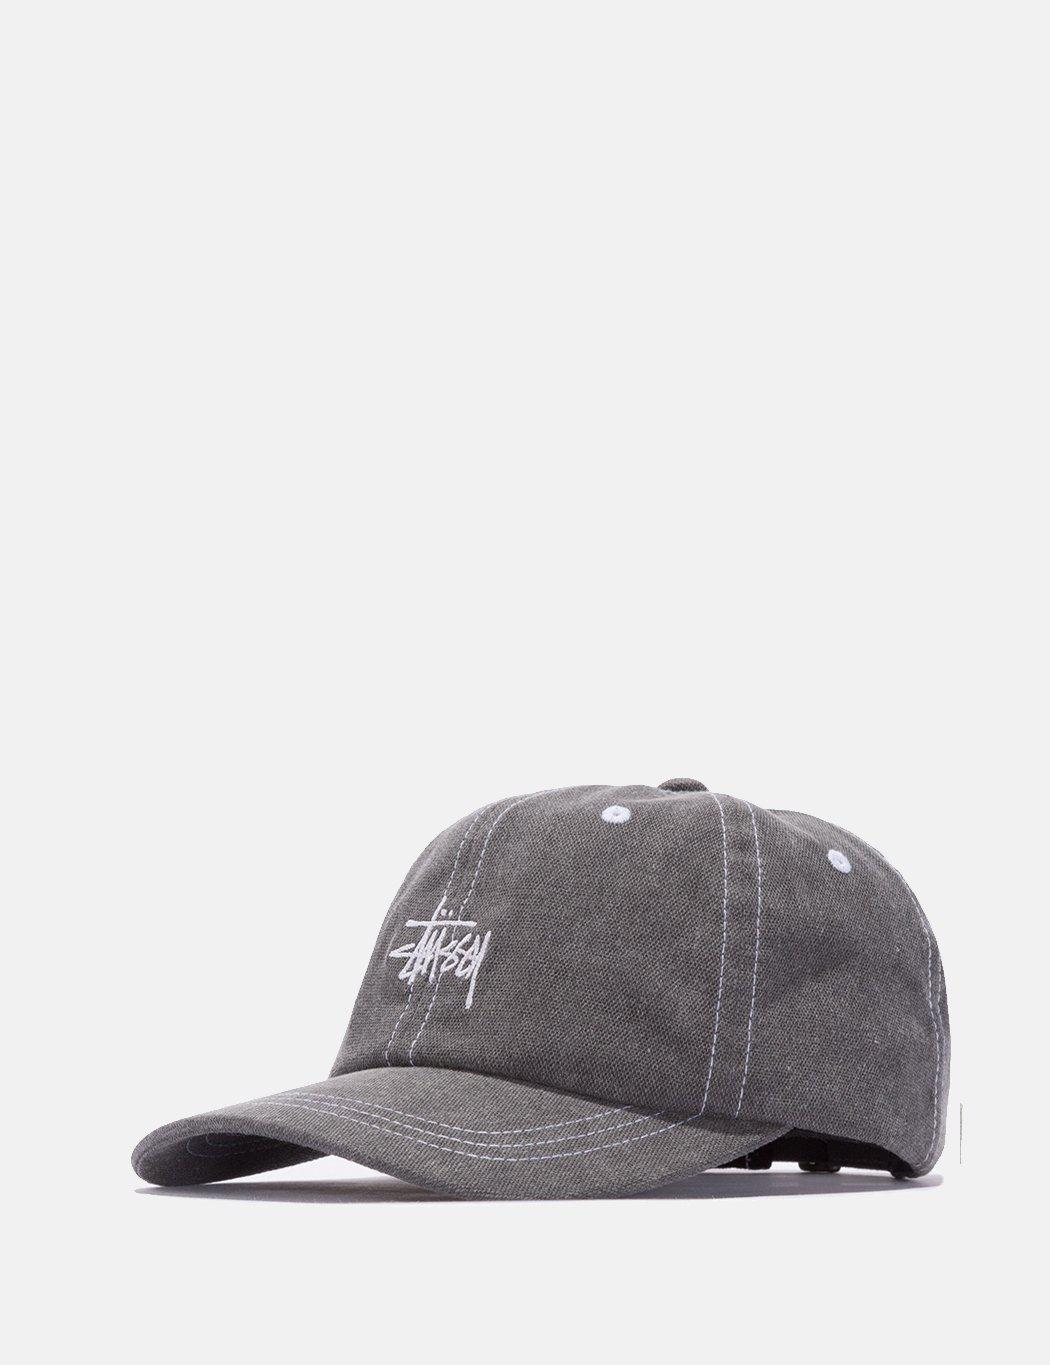 f9665577796 Stussy Washed Stock Low Cap in Black for Men - Lyst